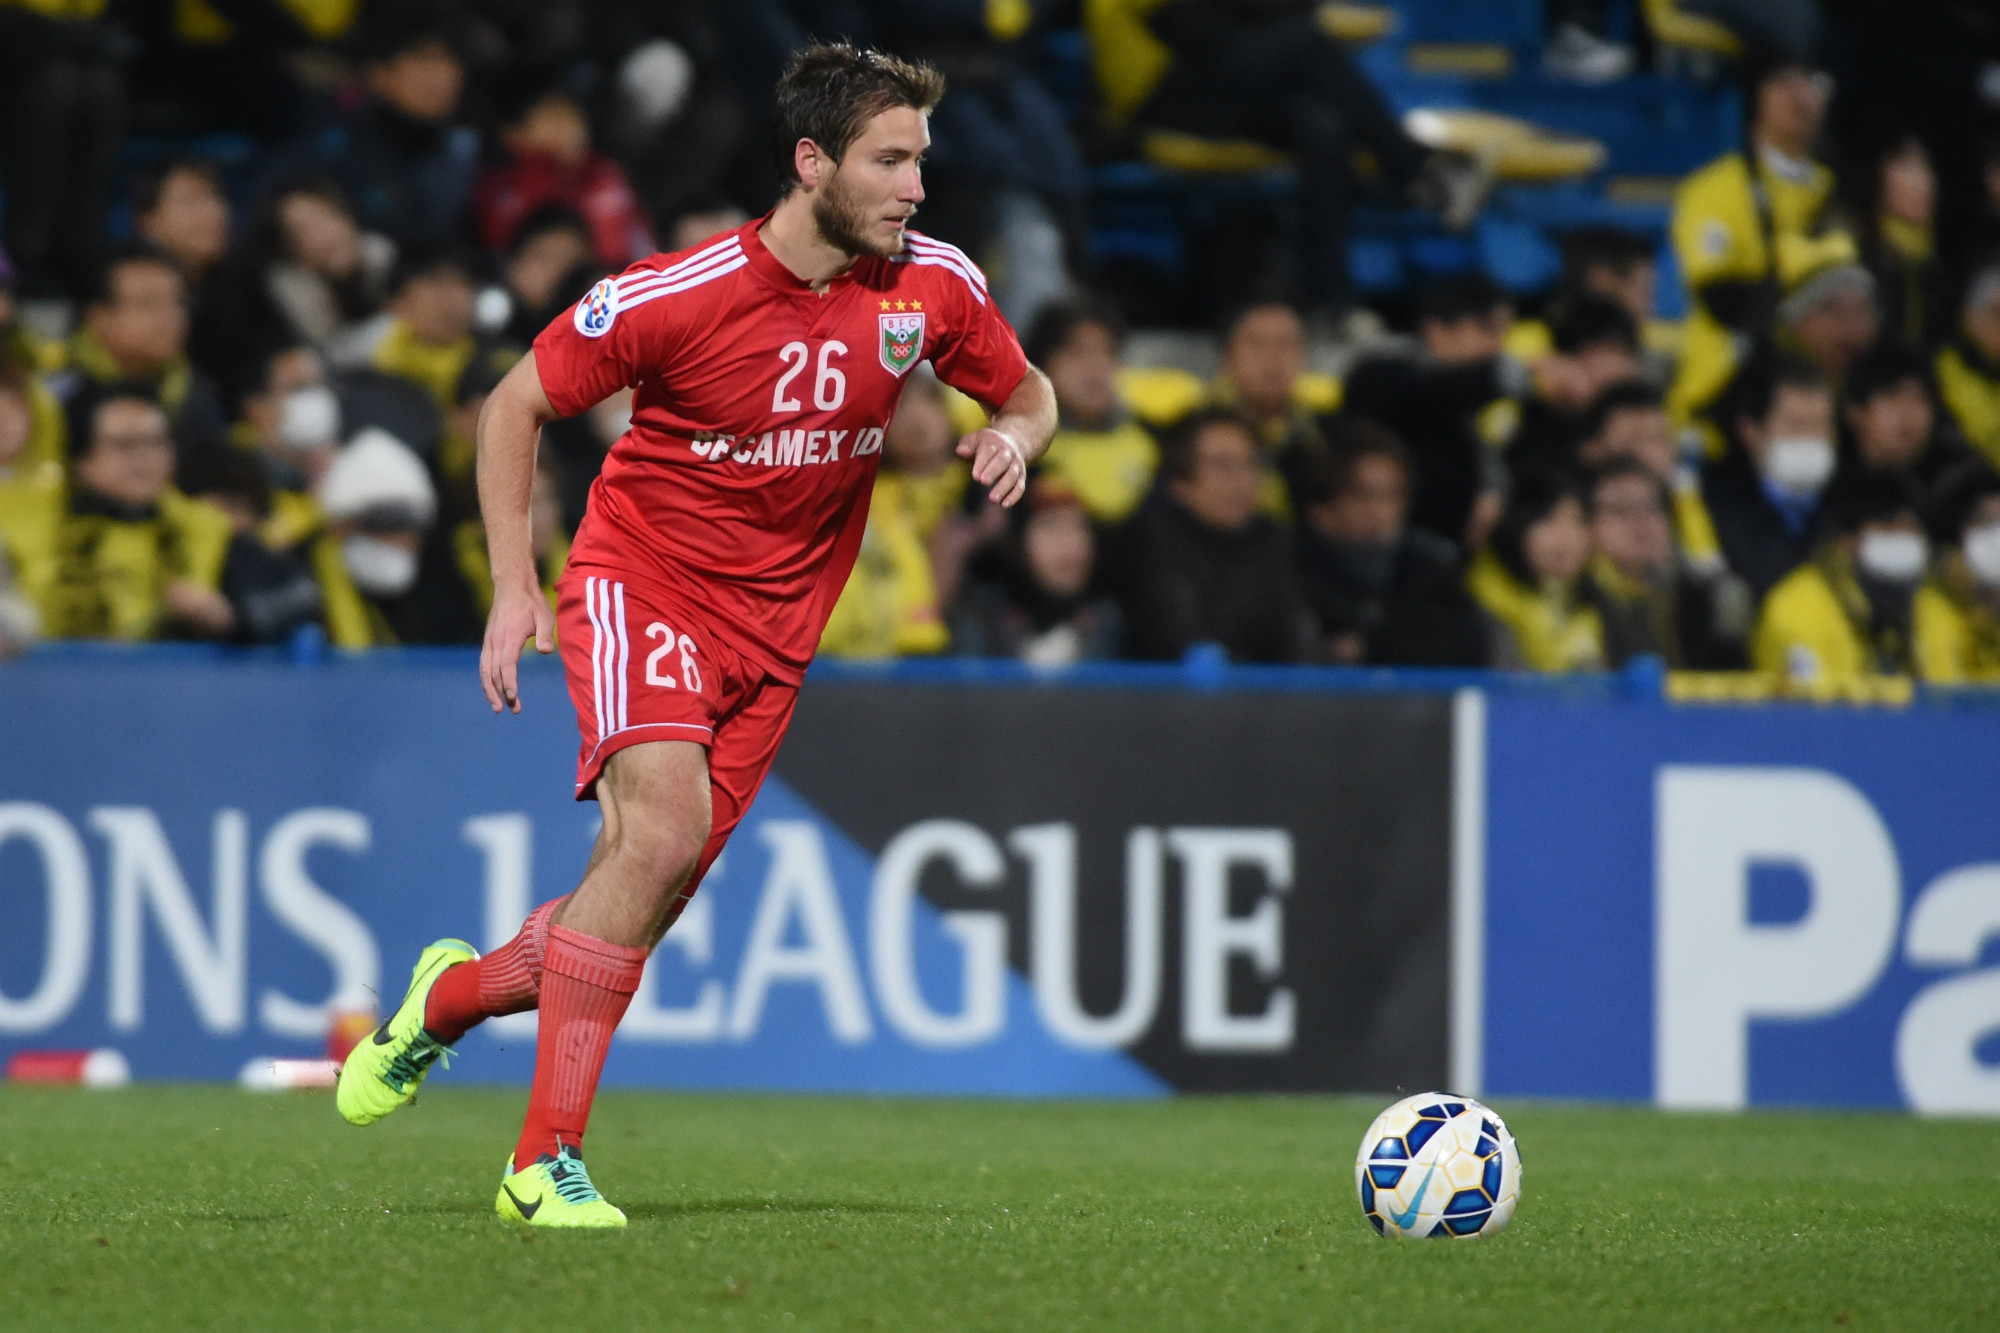 David Vrankovic in action for Binh Duong during the 2015 AFC Champions League.